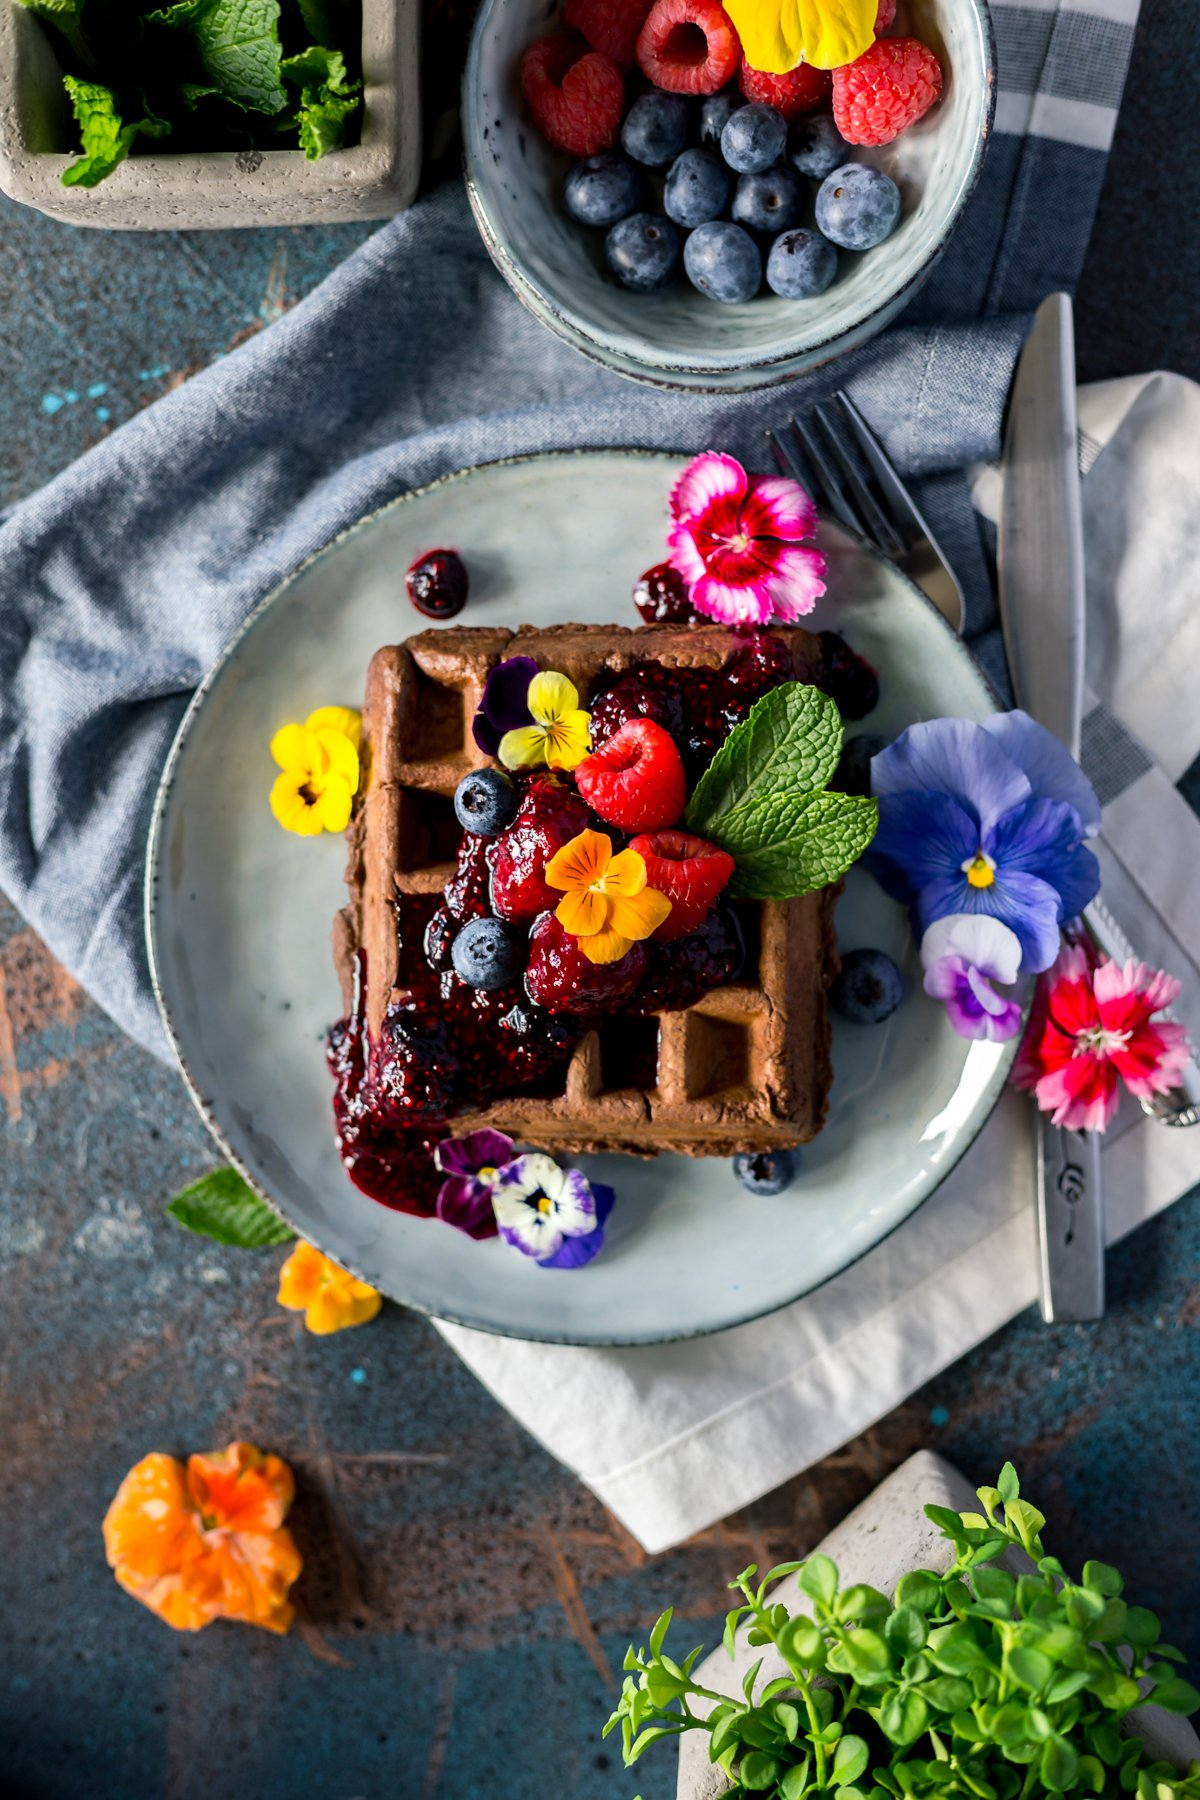 Breakfast or dessert? You decide when you whip up these sweet and savory waffle recipes! Dig into chocolate waffles with triple berry compote today! | asimplepantry.com